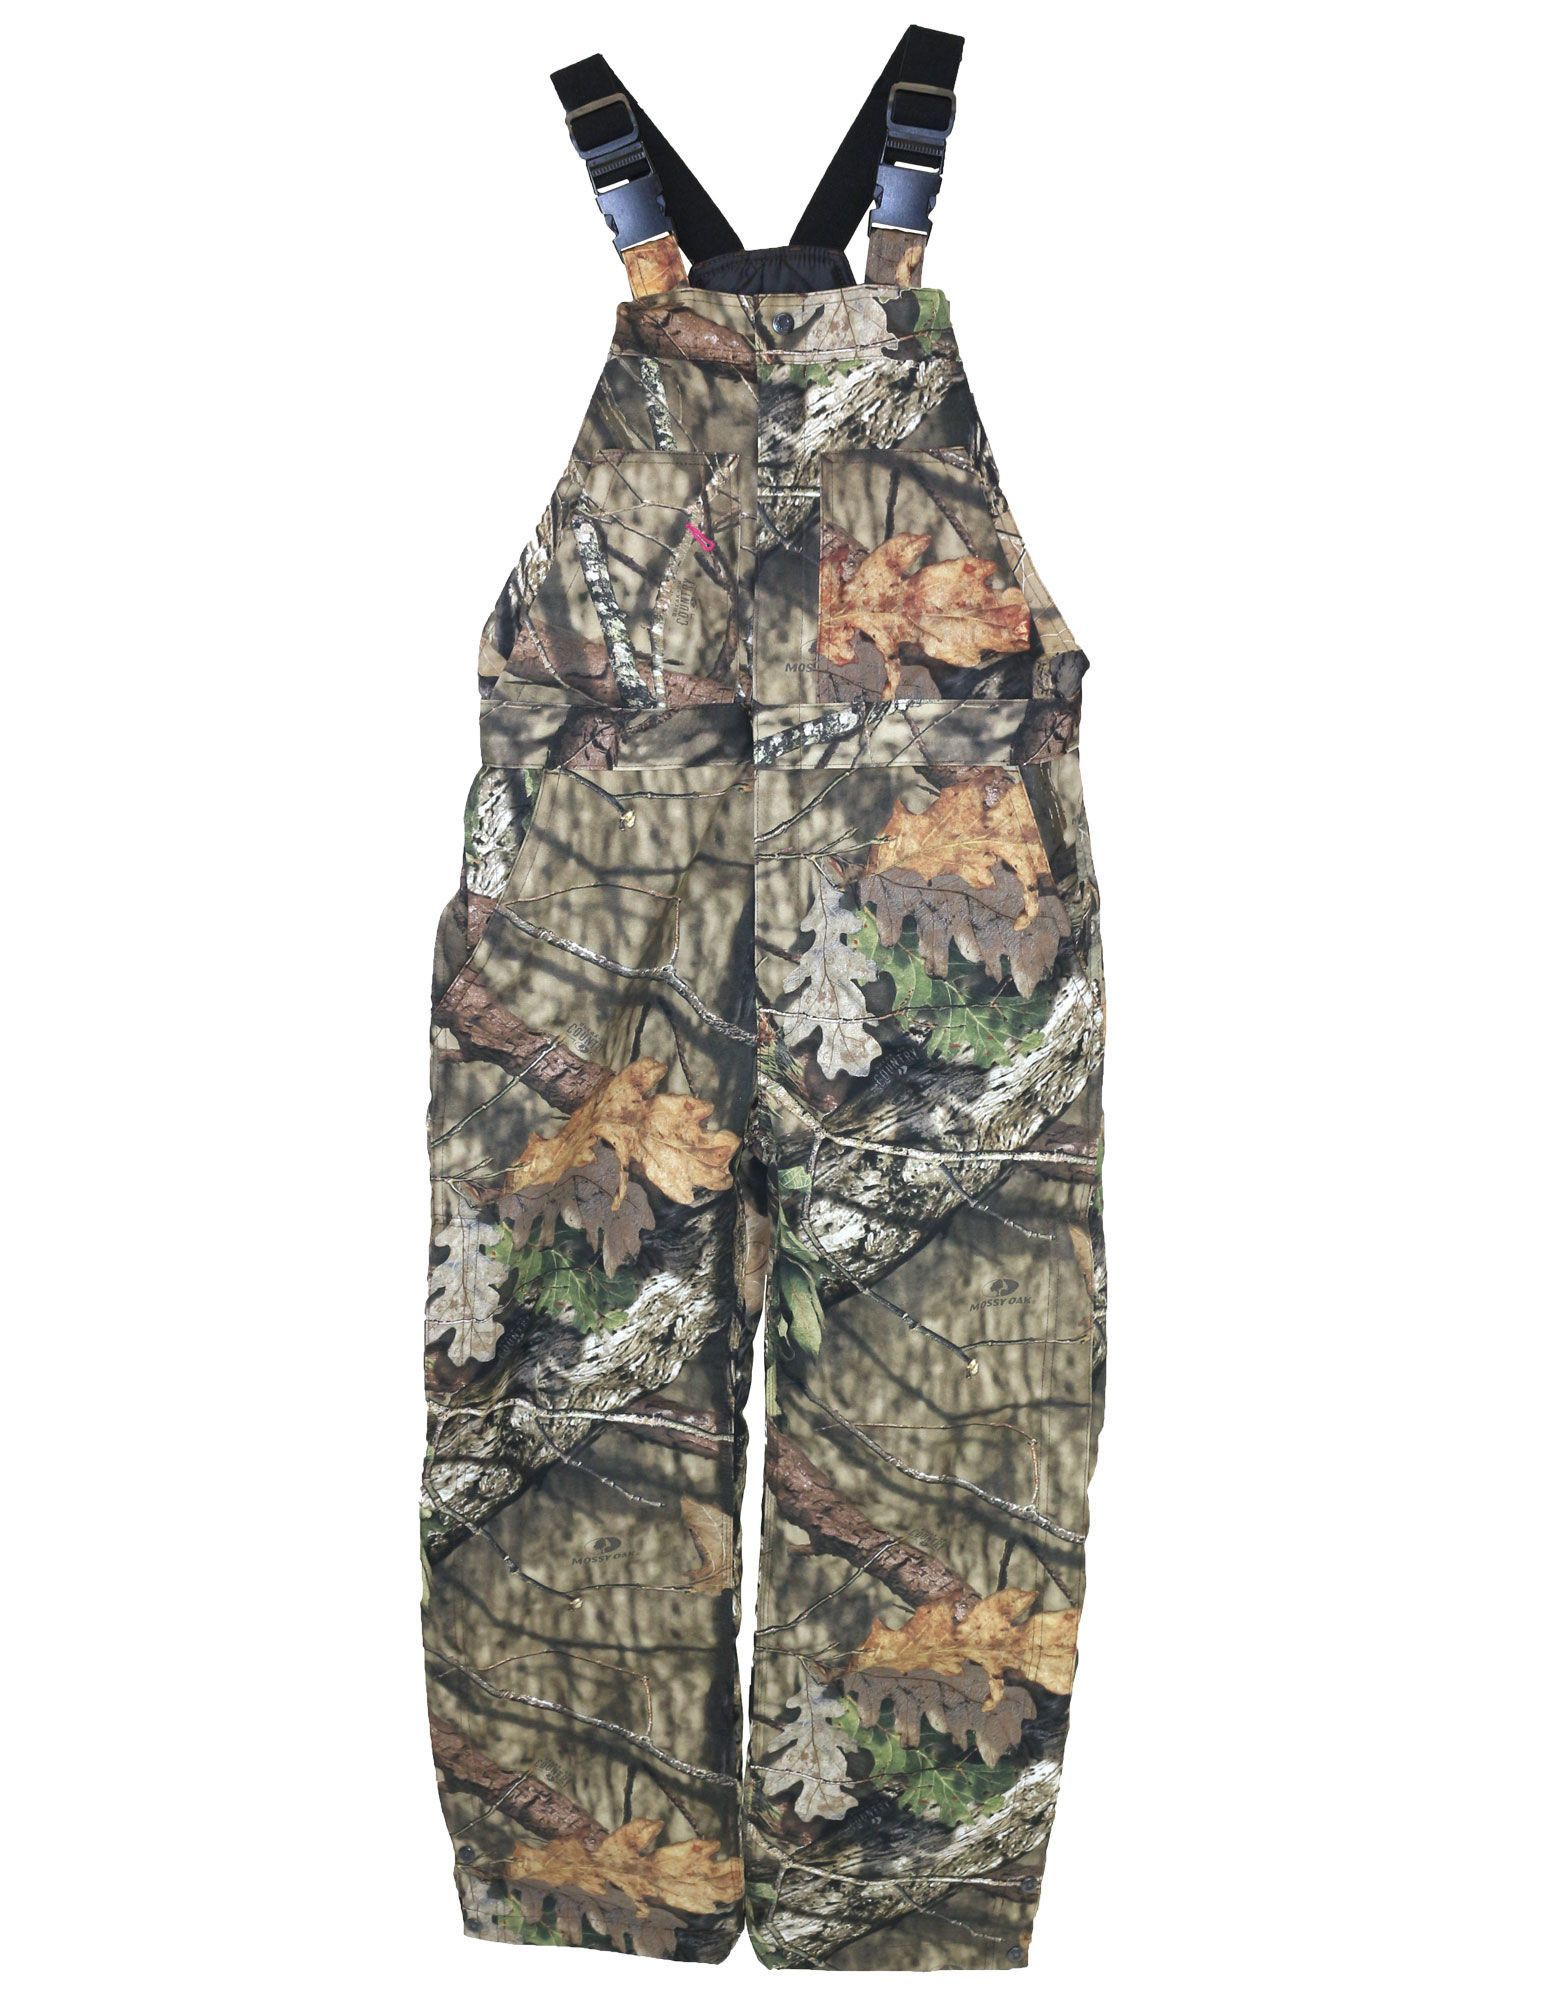 hunting insulated bib overall by walls overalls bib on walls insulated coveralls for women id=36255